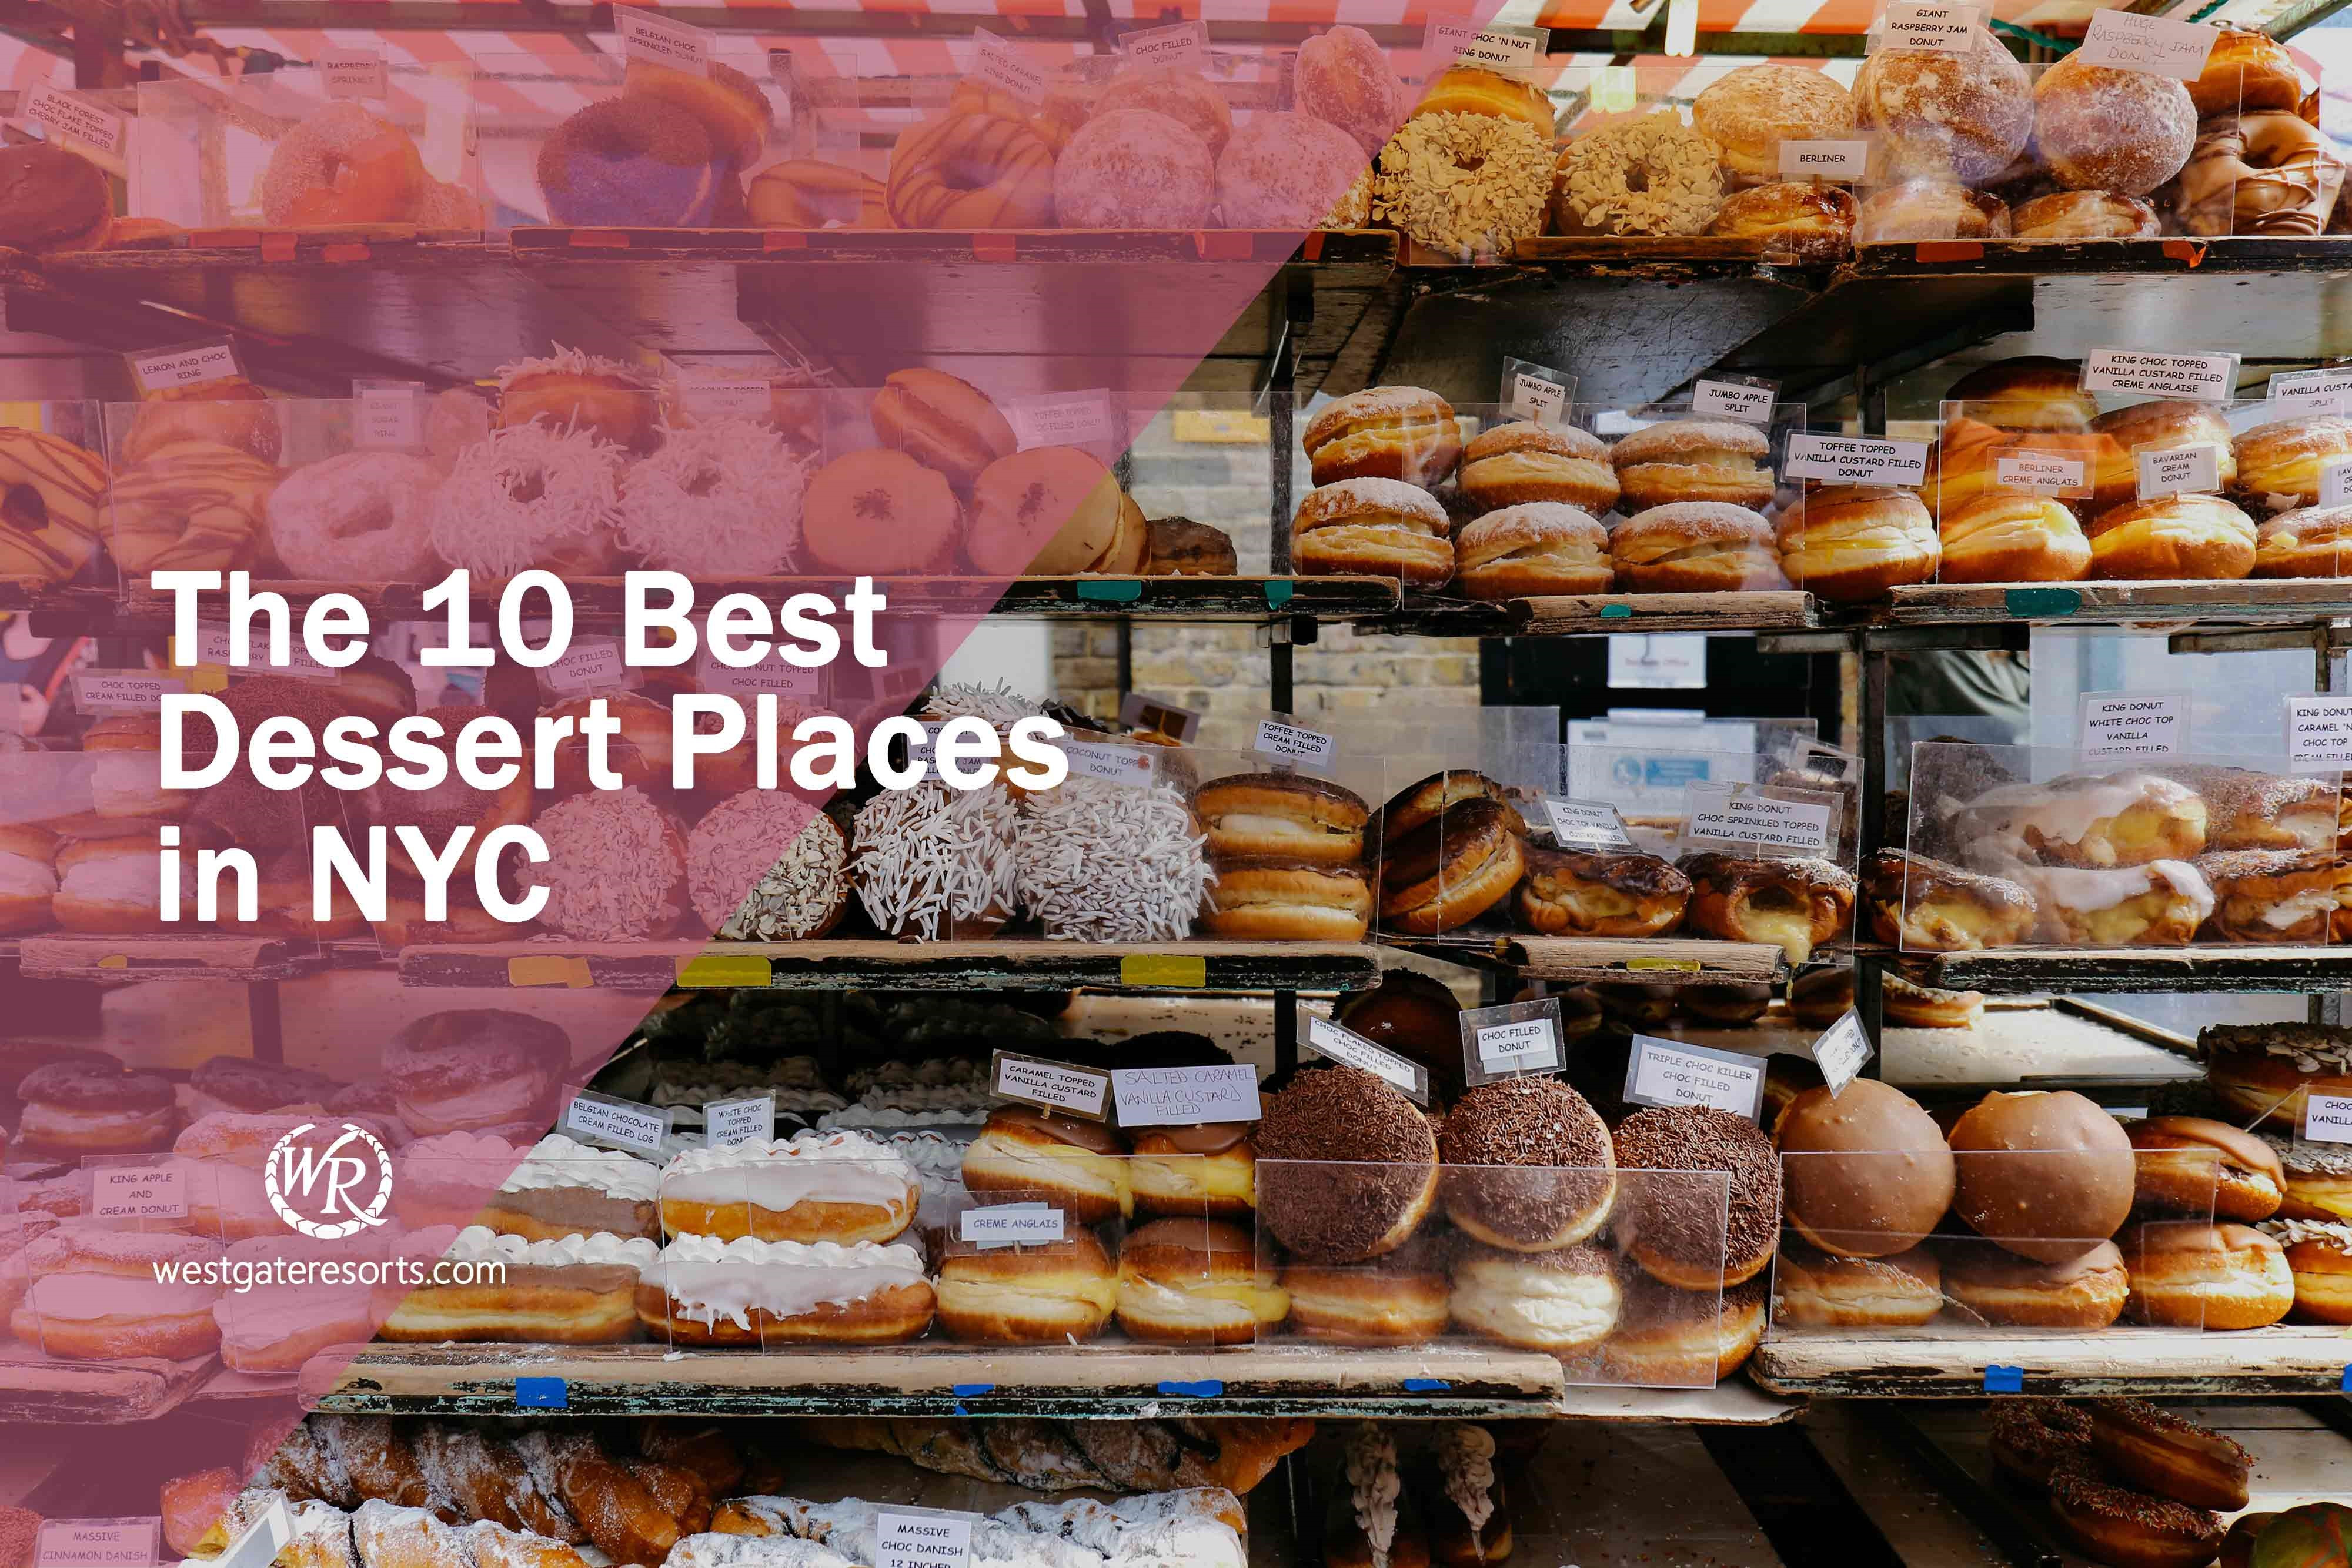 The 10 Best Dessert Places in NYC